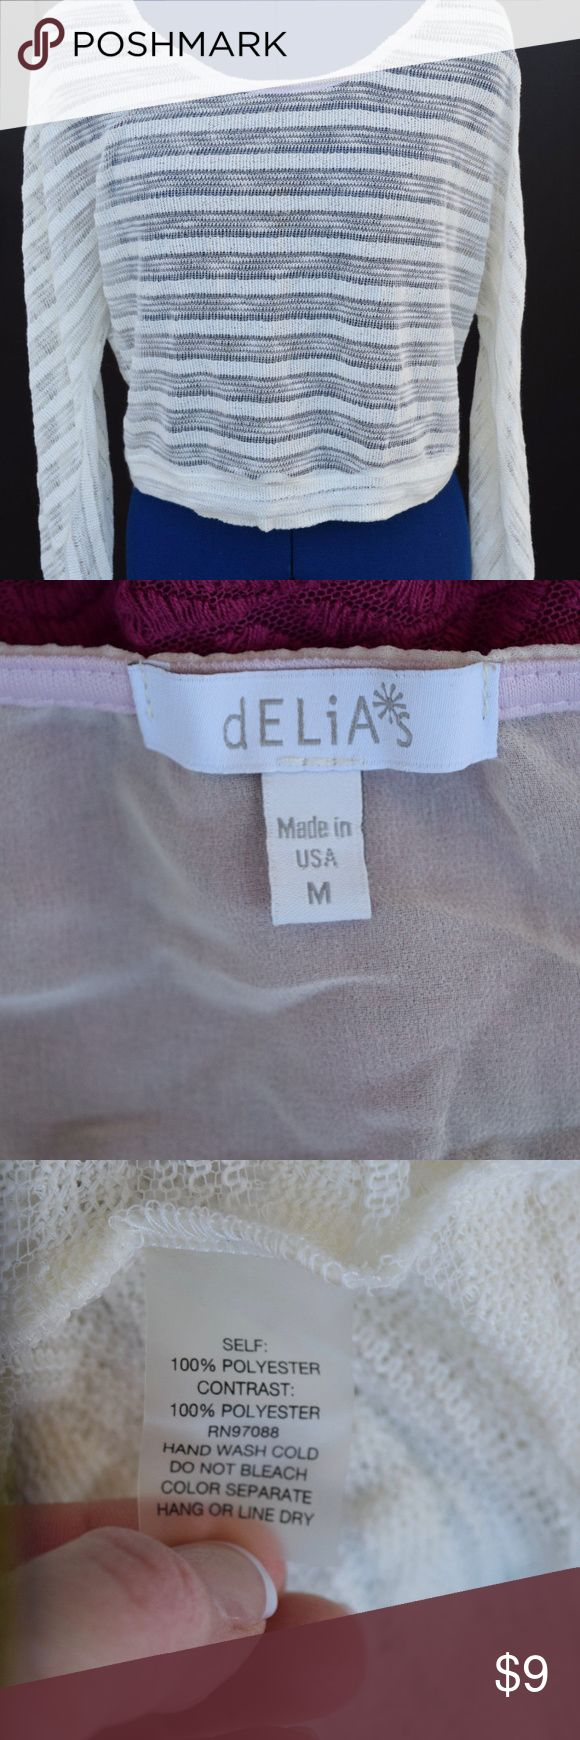 Delias Womens Long Sleeve Cream Shirt - MED Brand: Delia's Gender: Women's Item: Shirt Color:  Cream Size: Women's Medium Neckline:  Boat Neck Sleeve Length: Long Sleeve Materials:  100% Polyester Additional Info:  Solid Contrast Piece Down the Middle of the Back Under Arm to Under Arm Measurement: 22.5 Inches Length: 17 Inches Condition: Gently Pre-Owned, Good Condition Delia's Tops